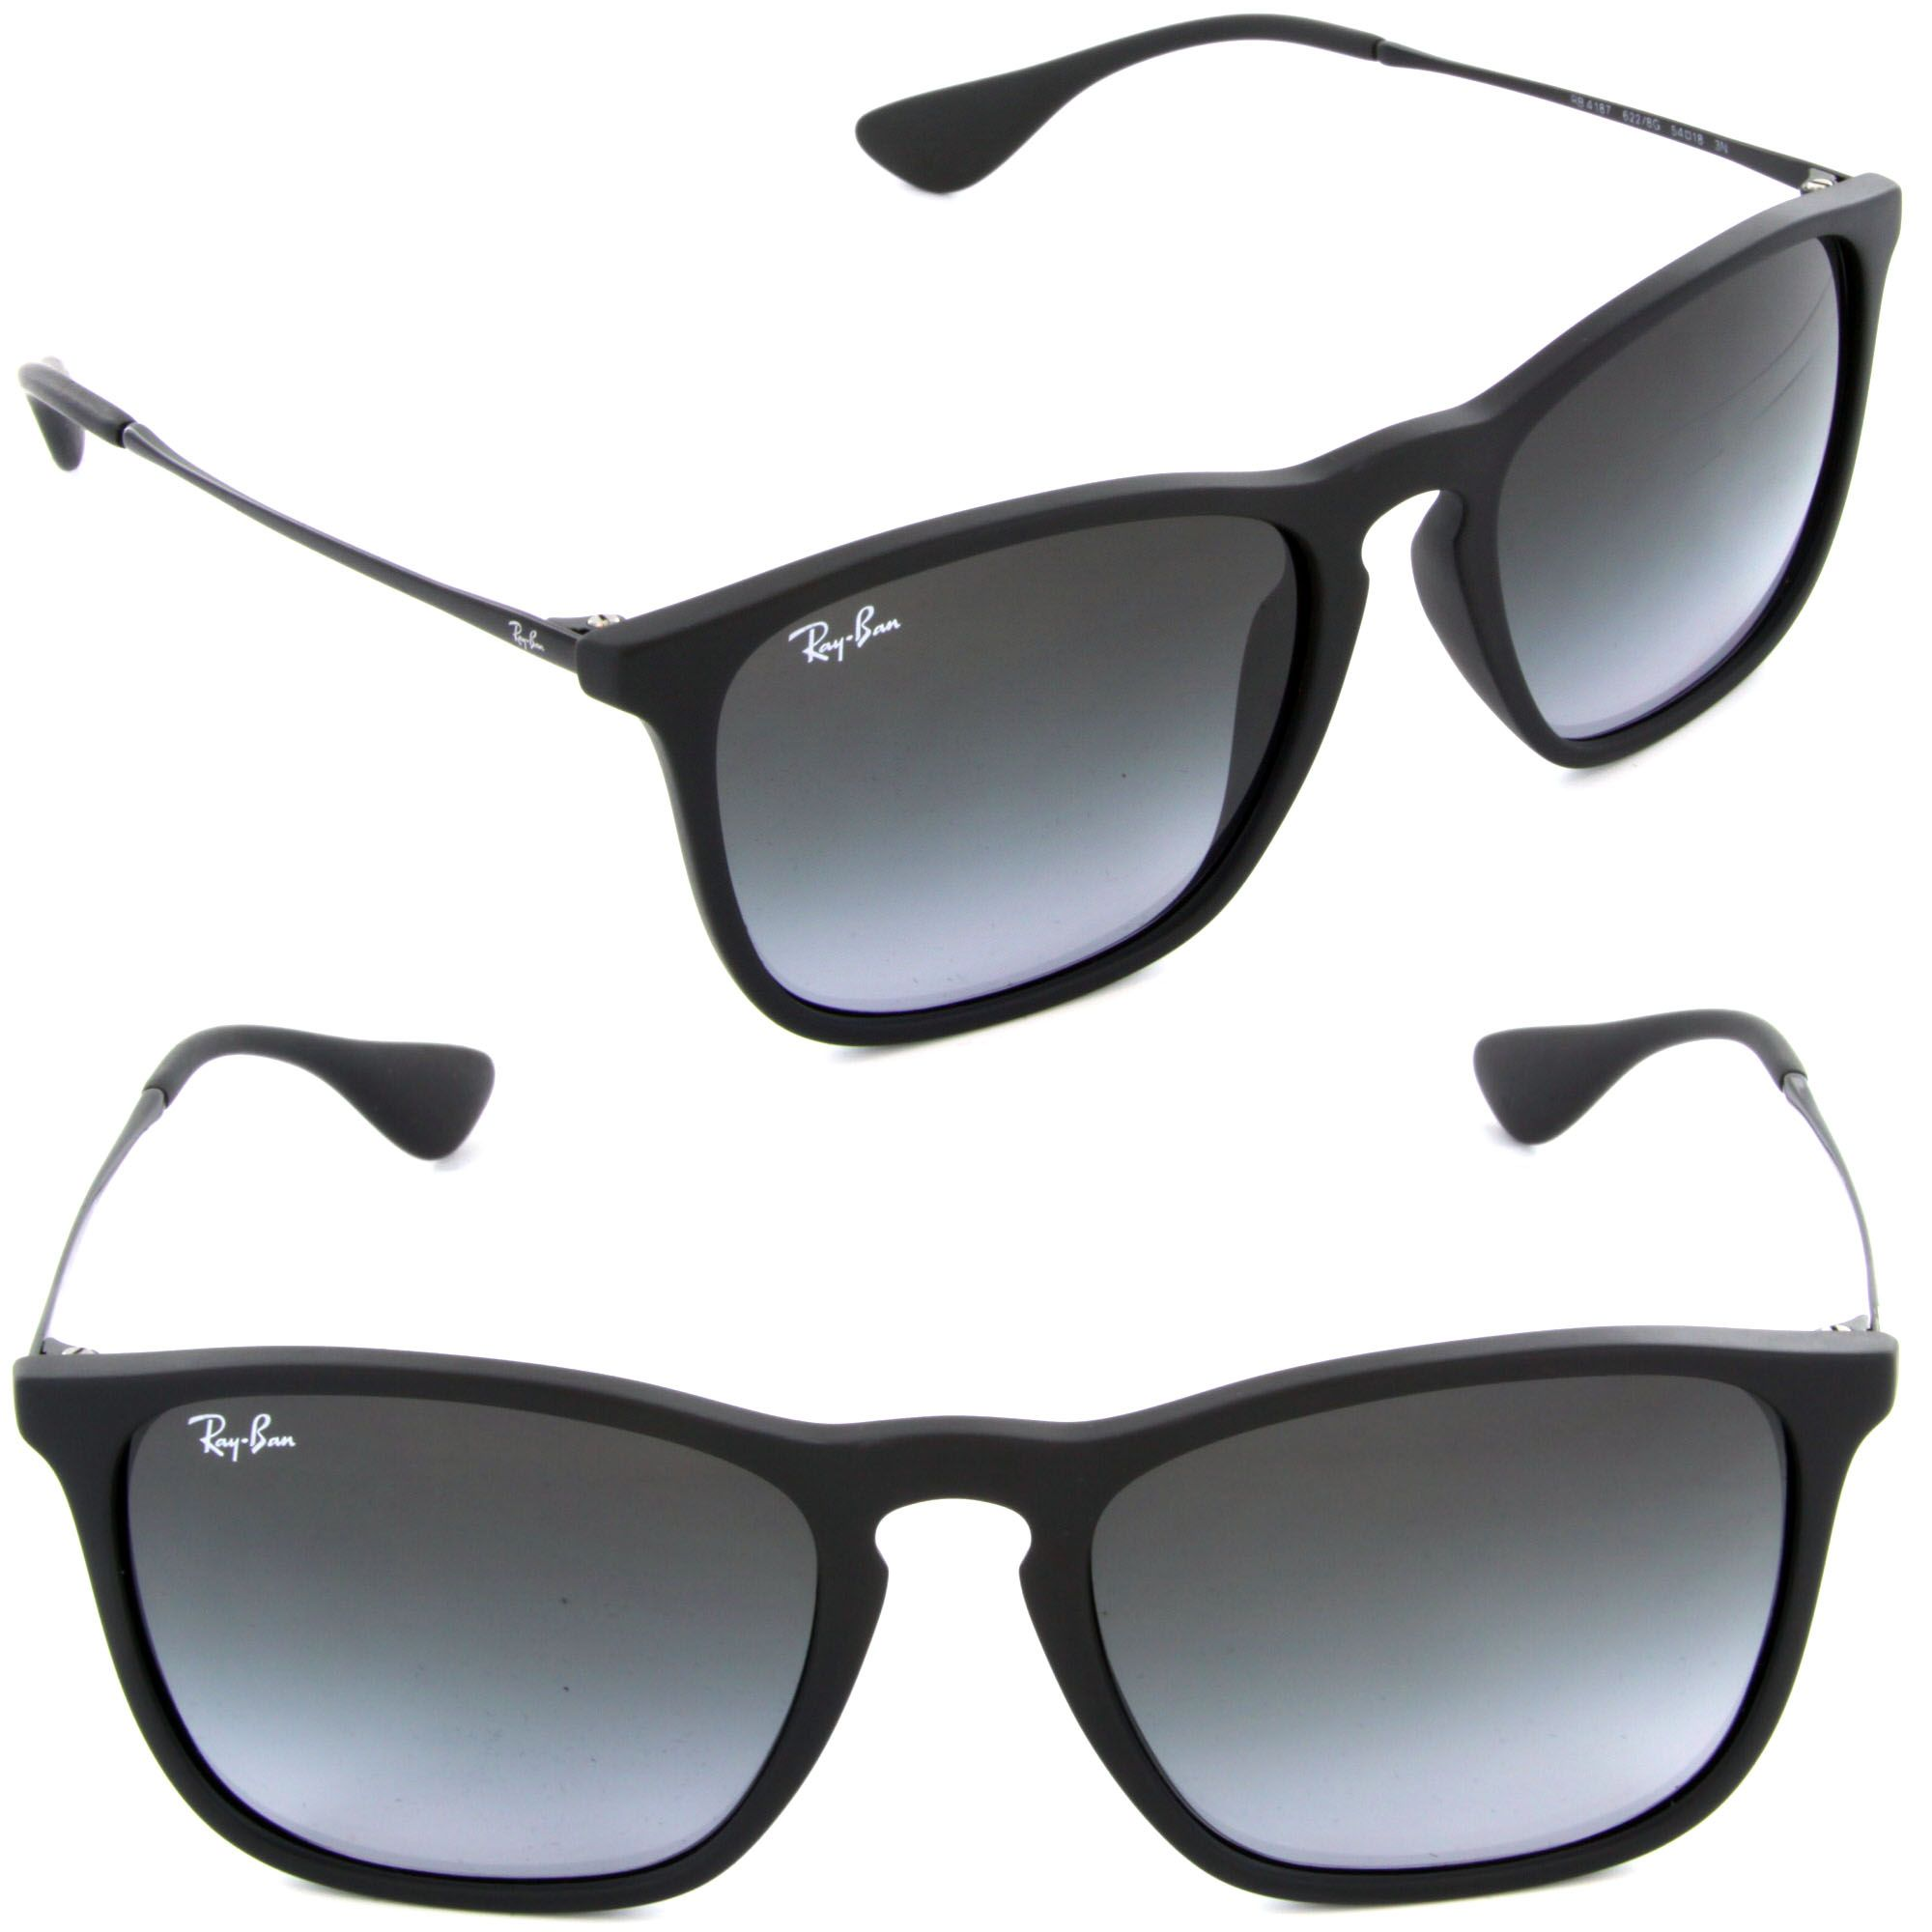 Ray Ban Chris Rb 4187 622 8g Rubber Black Sunglasses Ray Bans Sunglasses Accessories